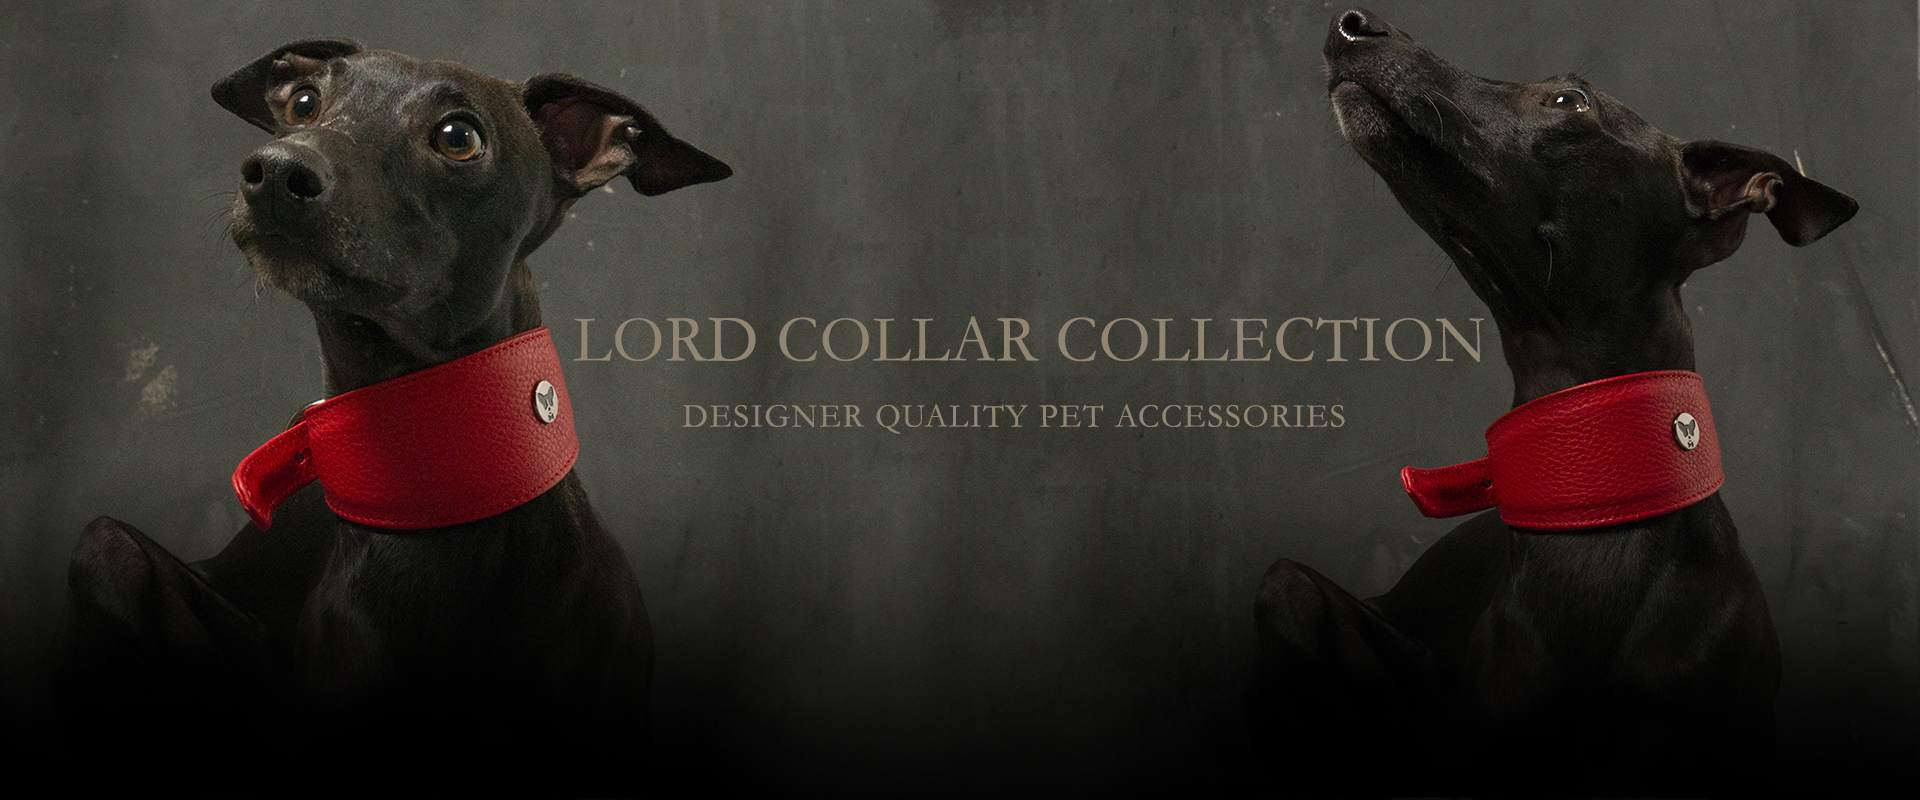 LORD COLLECTION | Designer-quality pet accessories by zikos